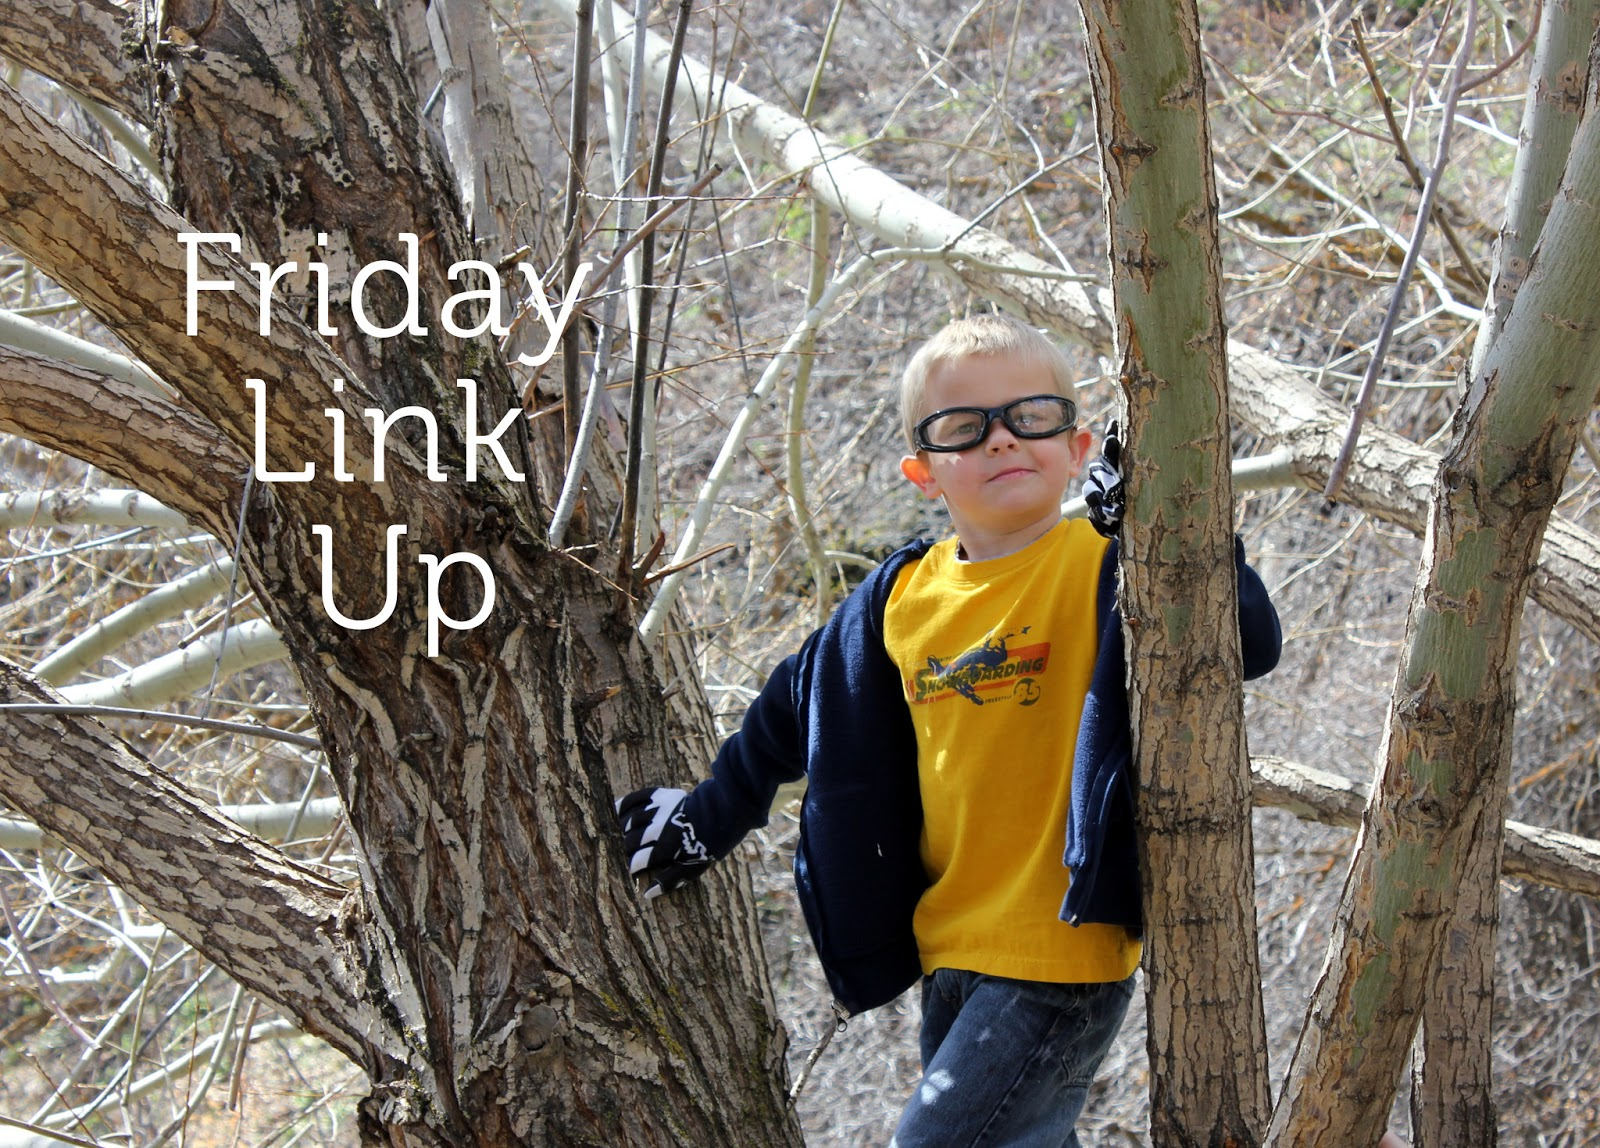 Friday Link Up Squibs and Crackers